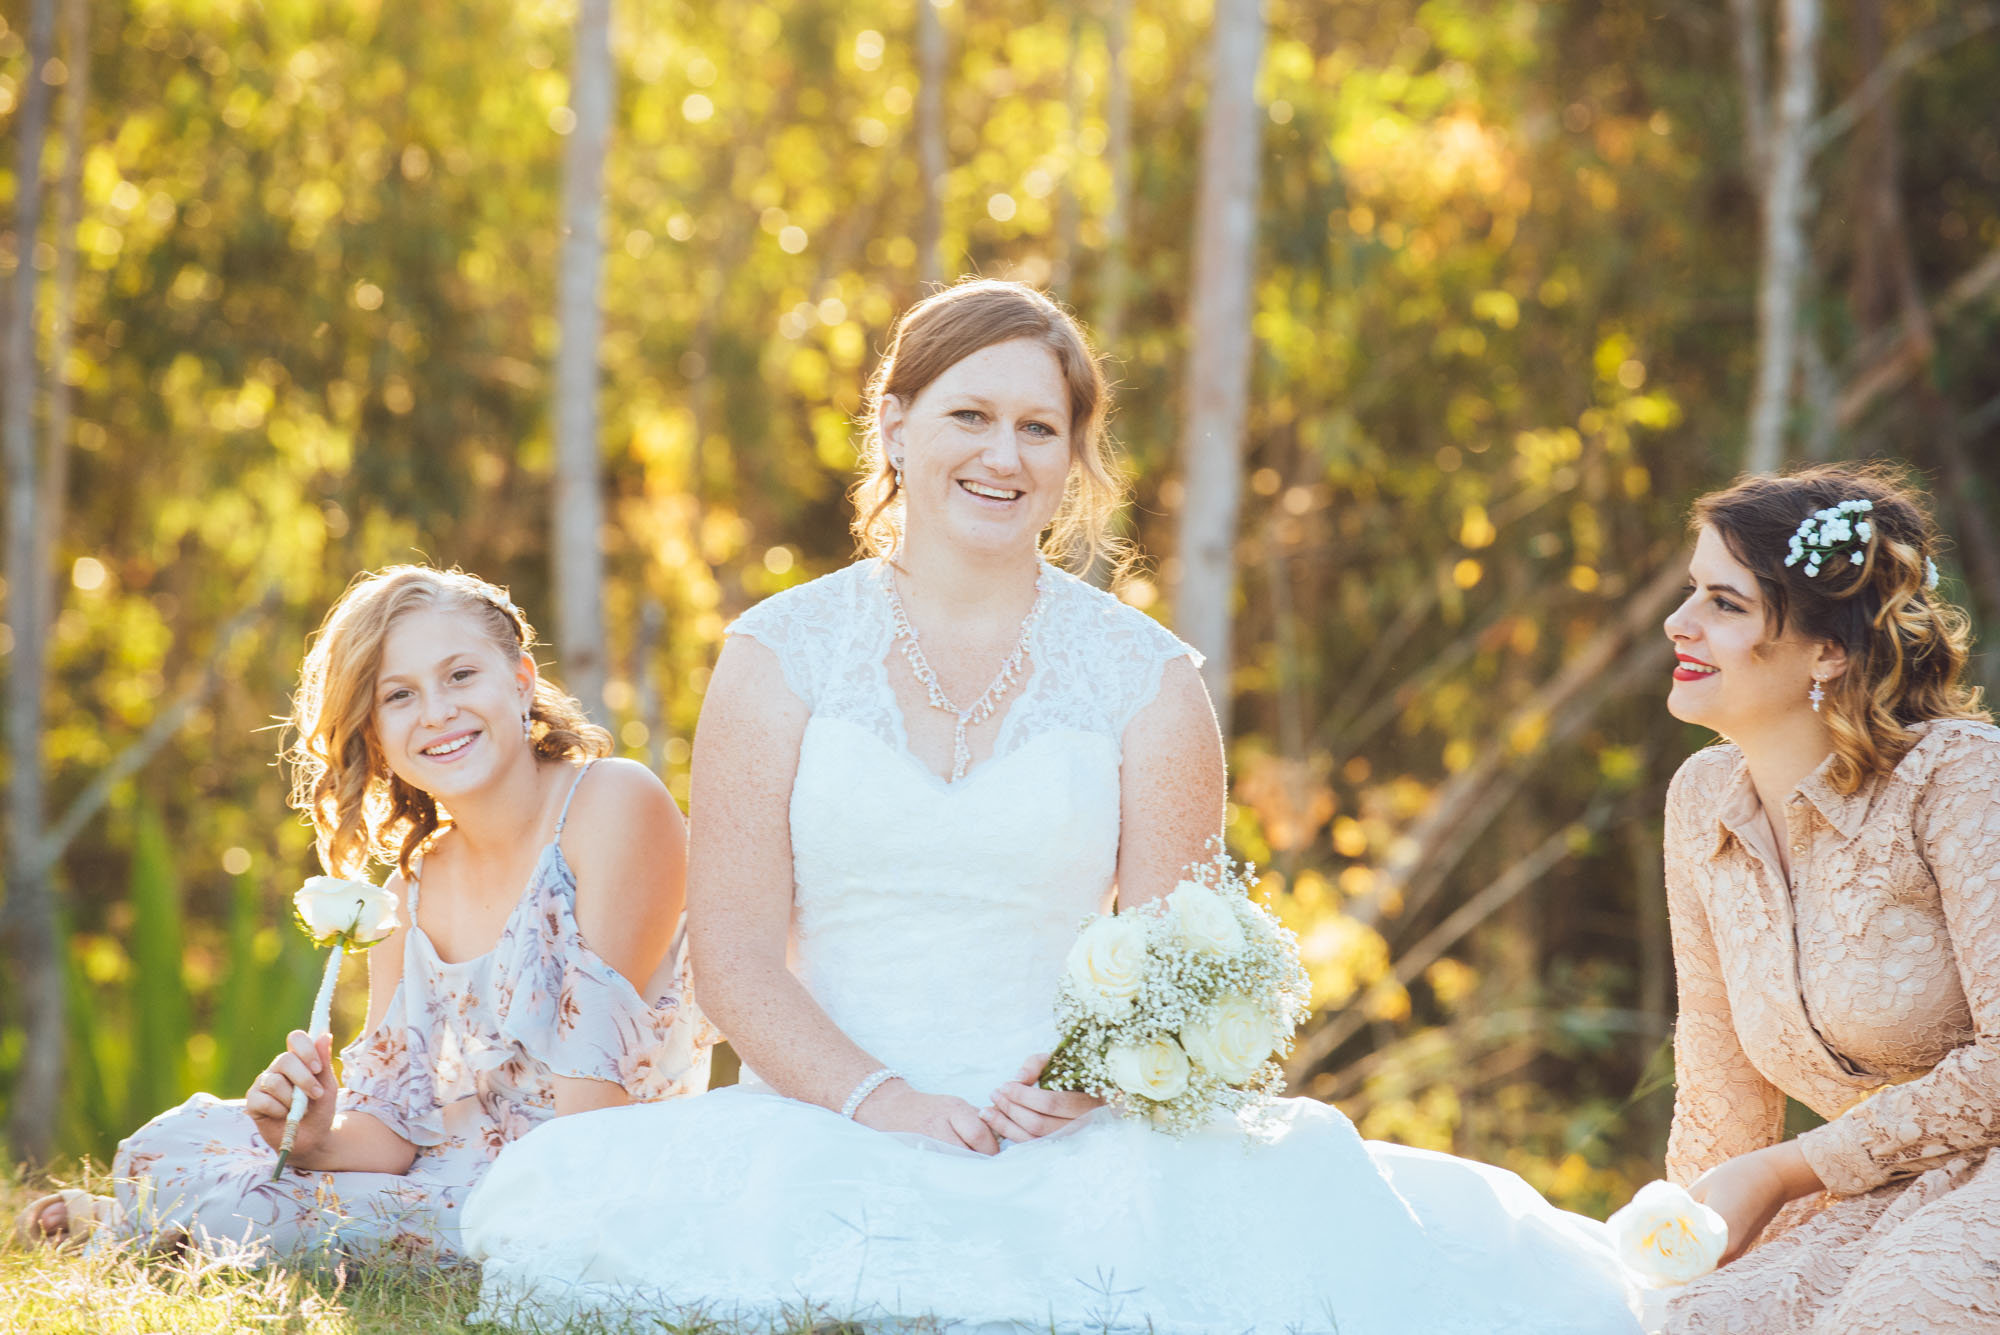 AnnaPhil-WalkaboutCreekWeddingPhotography-AnnaOsetroff-Best-Web-63